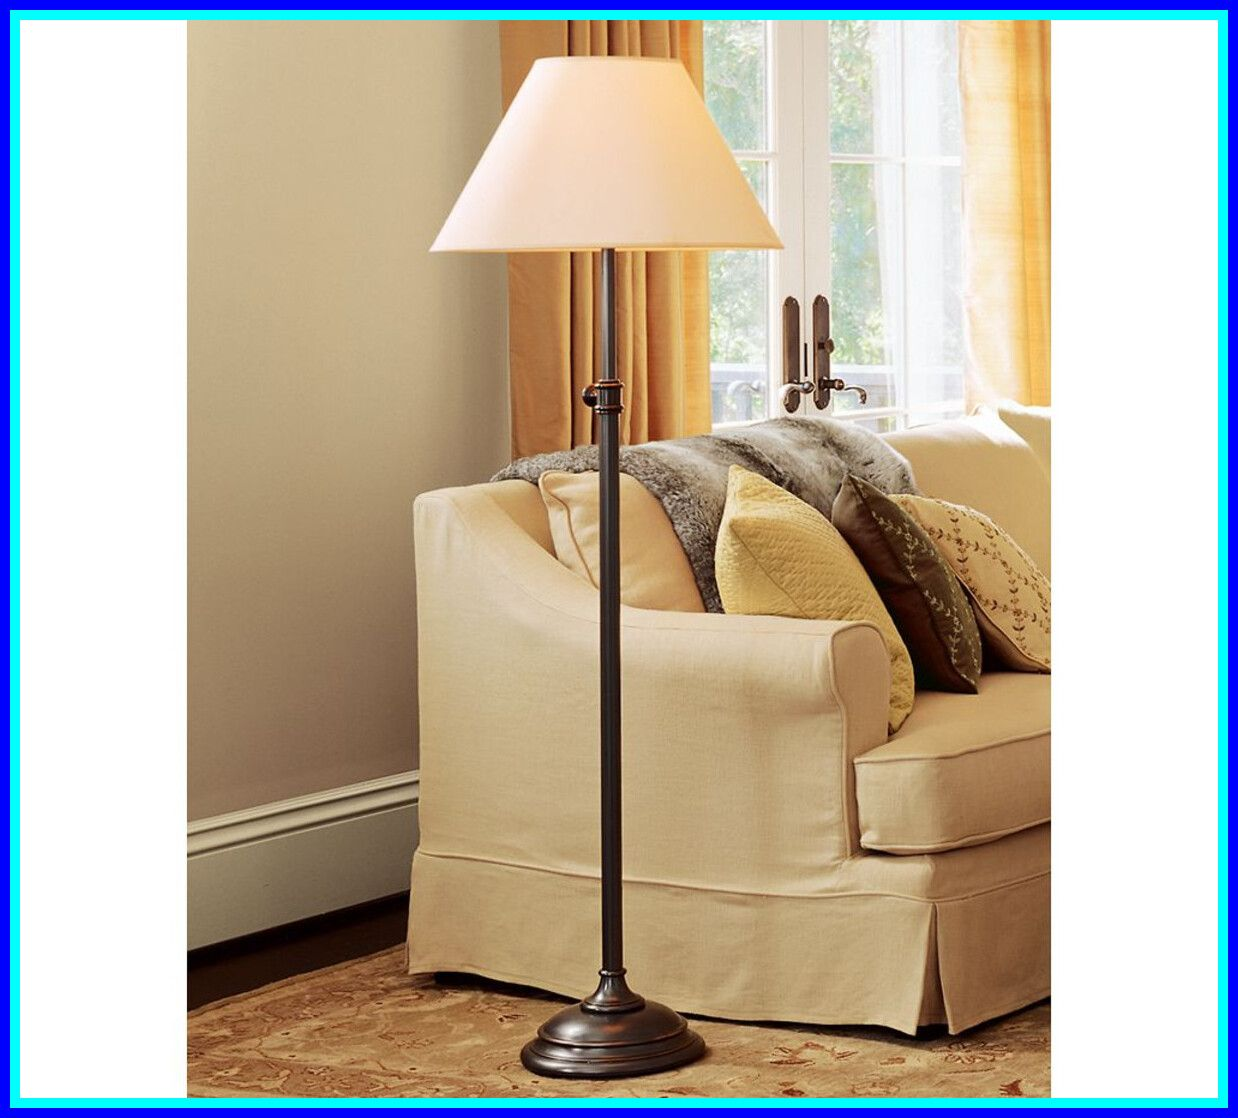 80 reference of tall lamp pottery barn in 2020 Floor